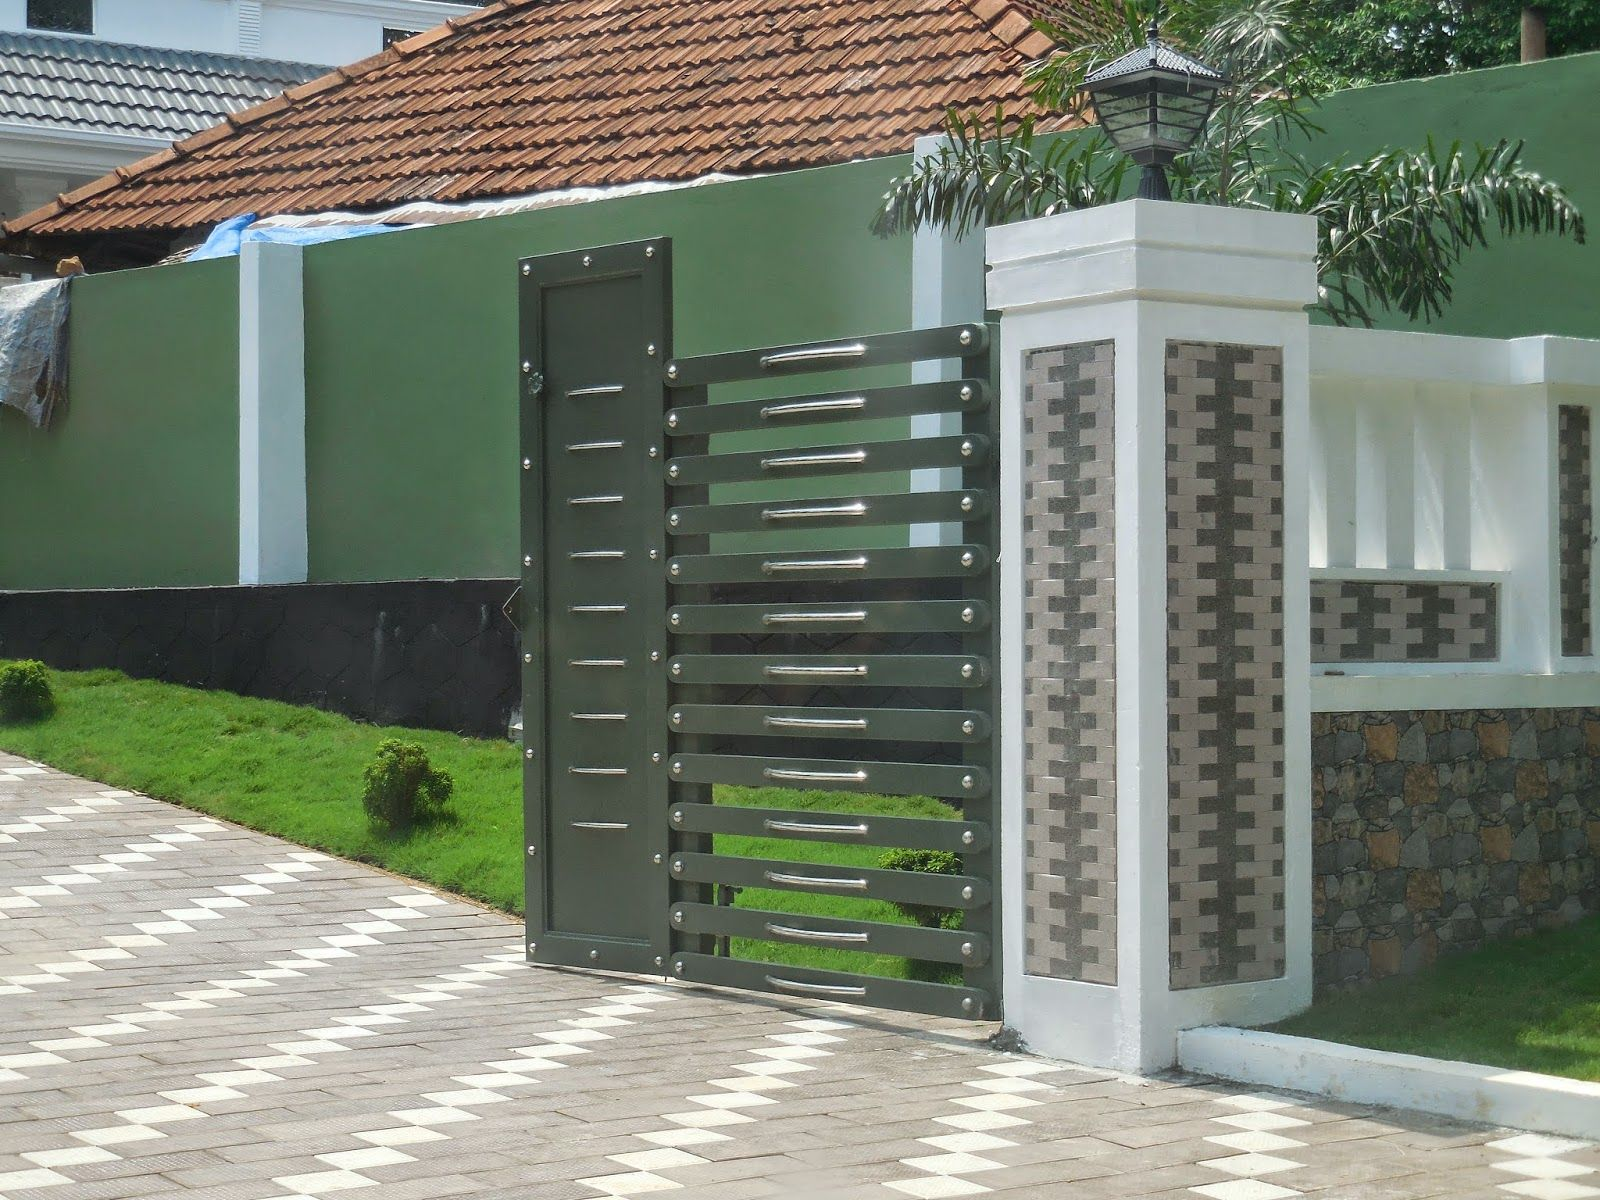 house fence design in kerala   Google Search. house fence design in kerala   Google Search   for my fence